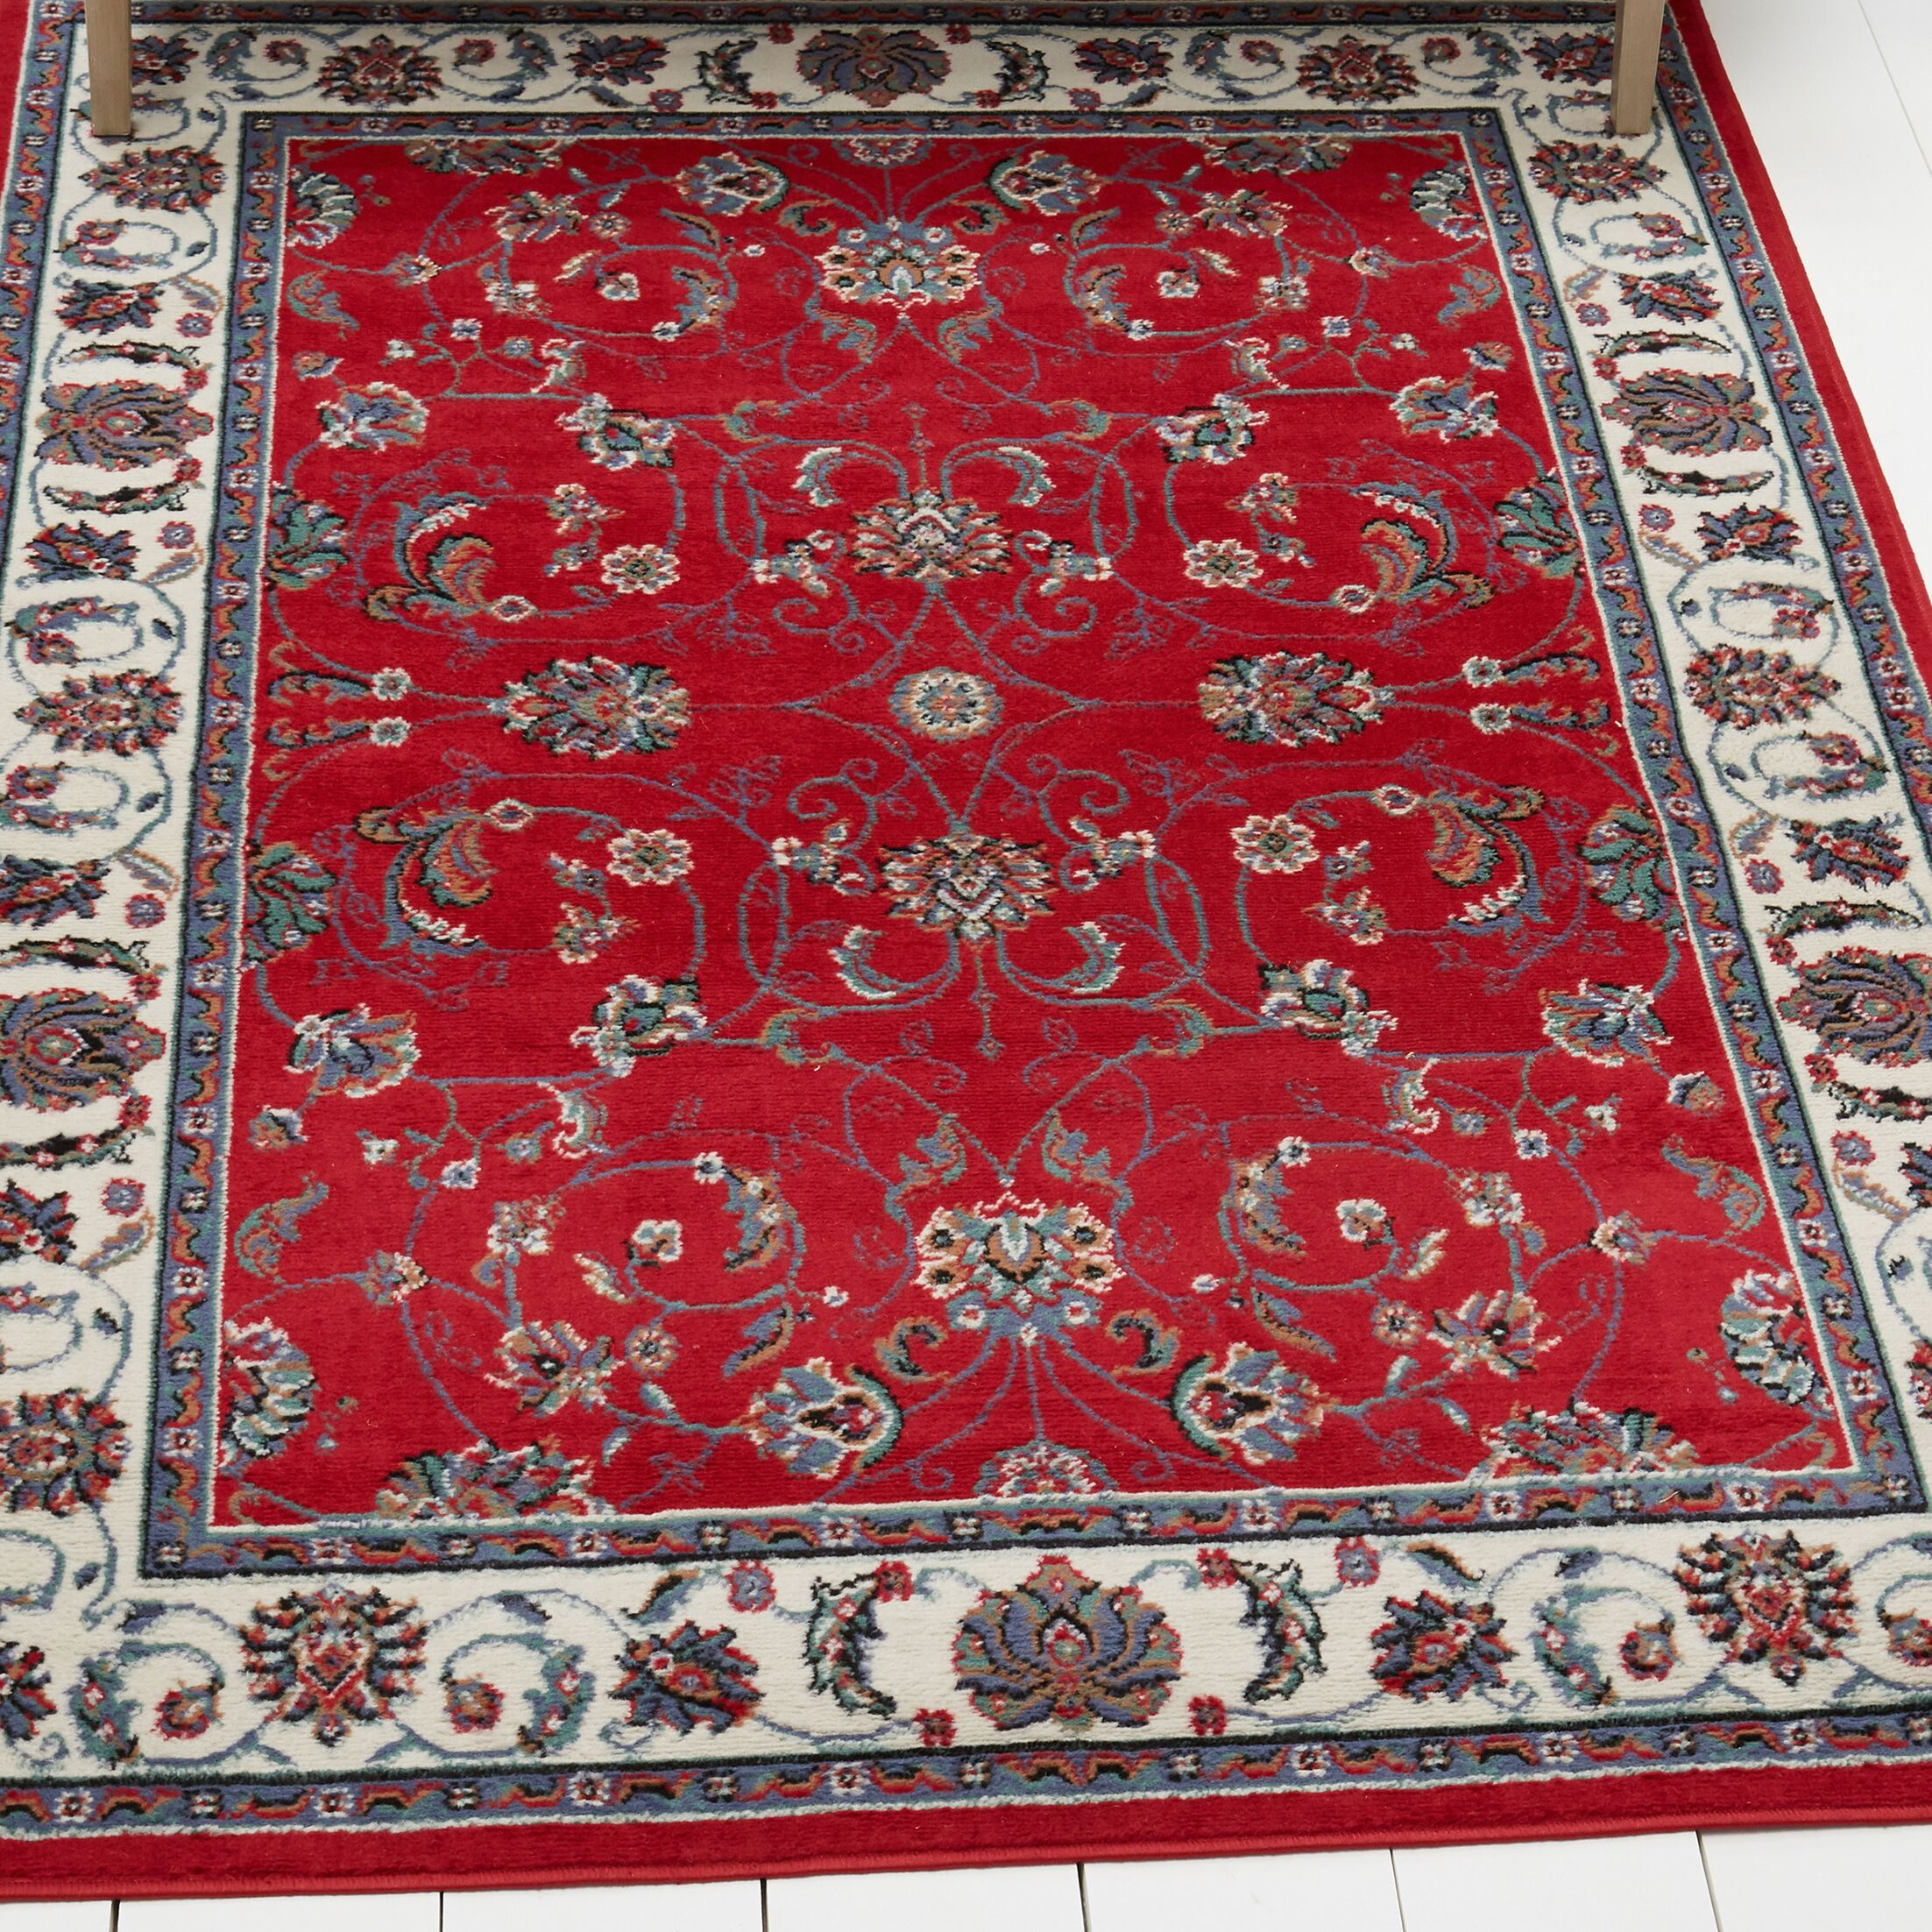 Lilly Traditional Border Red/Ivory Area Rug Rug Size: Rectangle 3'7